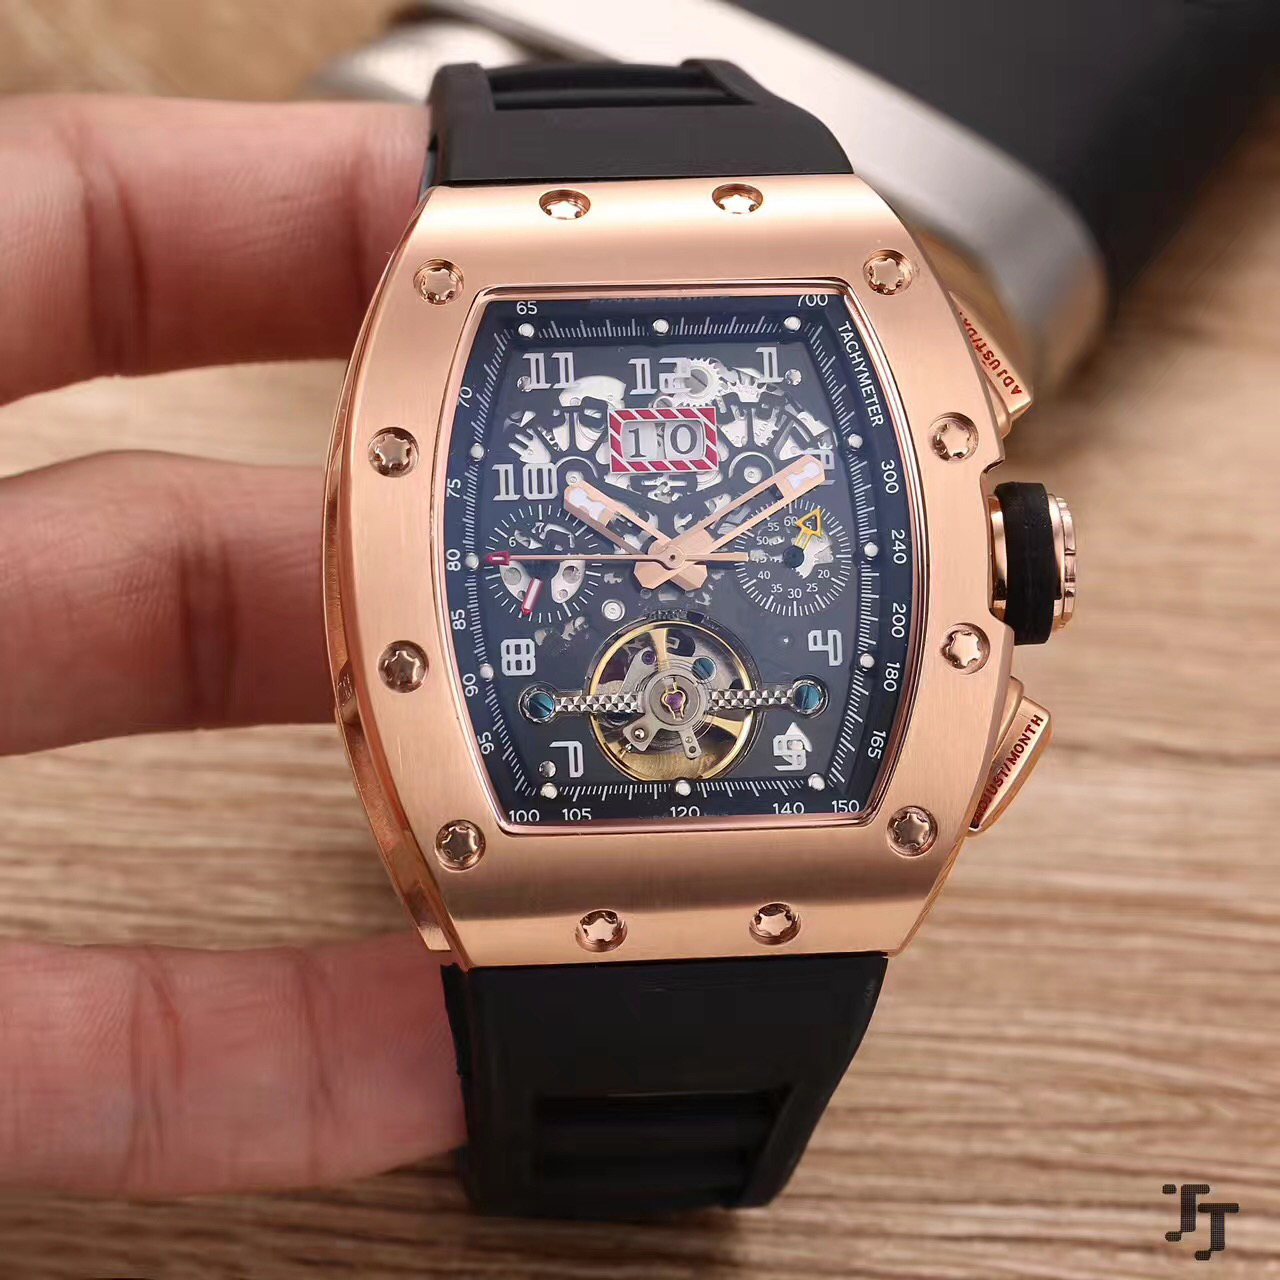 Luxury Brand New Black Rubber Men Watch Sapphire Glass Automatic Mechanical Rose Gold Silver Black AAA+ Tourbillion CalendarLuxury Brand New Black Rubber Men Watch Sapphire Glass Automatic Mechanical Rose Gold Silver Black AAA+ Tourbillion Calendar